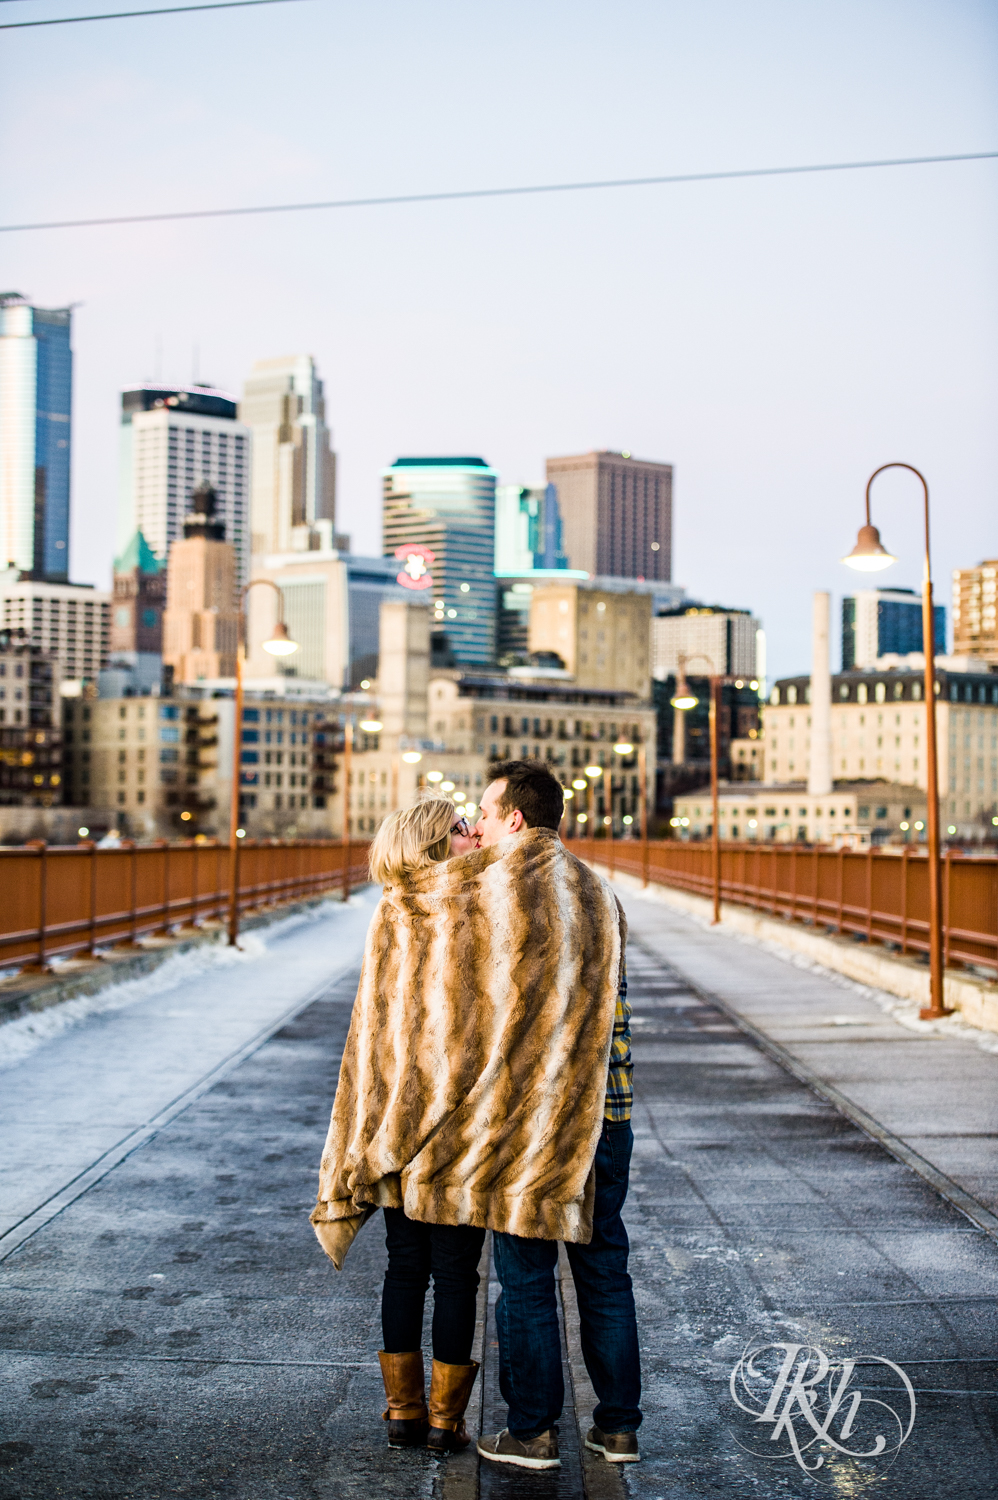 Kate & Kyle - Minnesota Sunrise Engagement Photography - Stone Arch Bridge - RKH Images (7 of 18).jpg